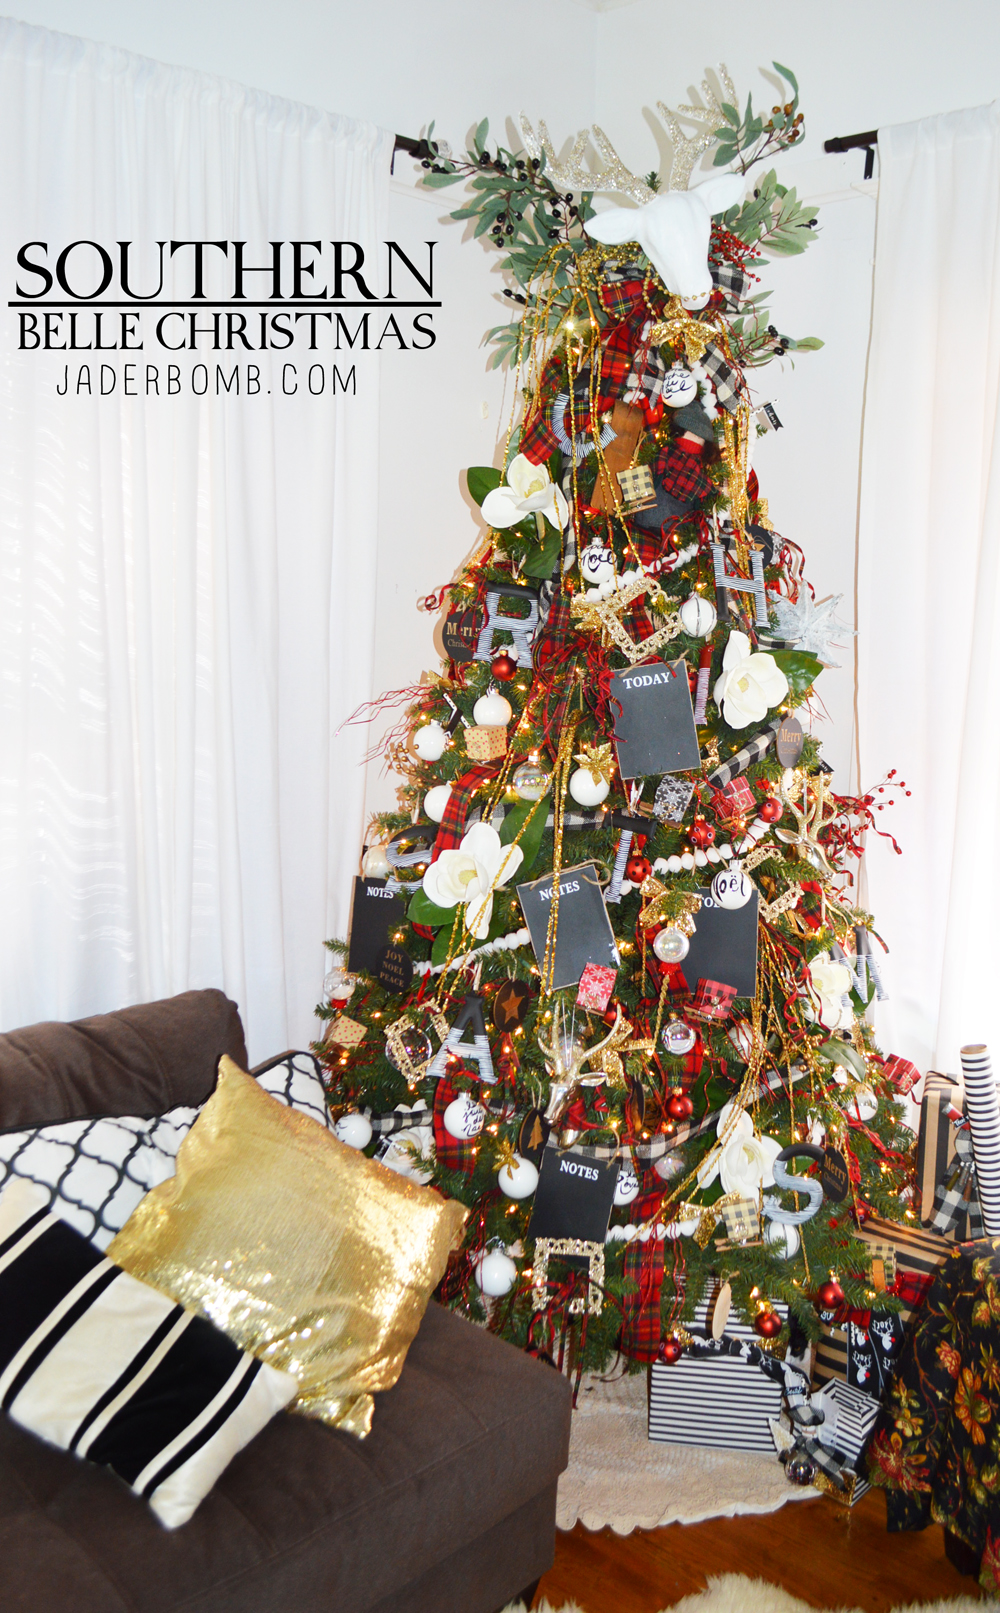 SOUTHERN BELLE CHRISTMAS